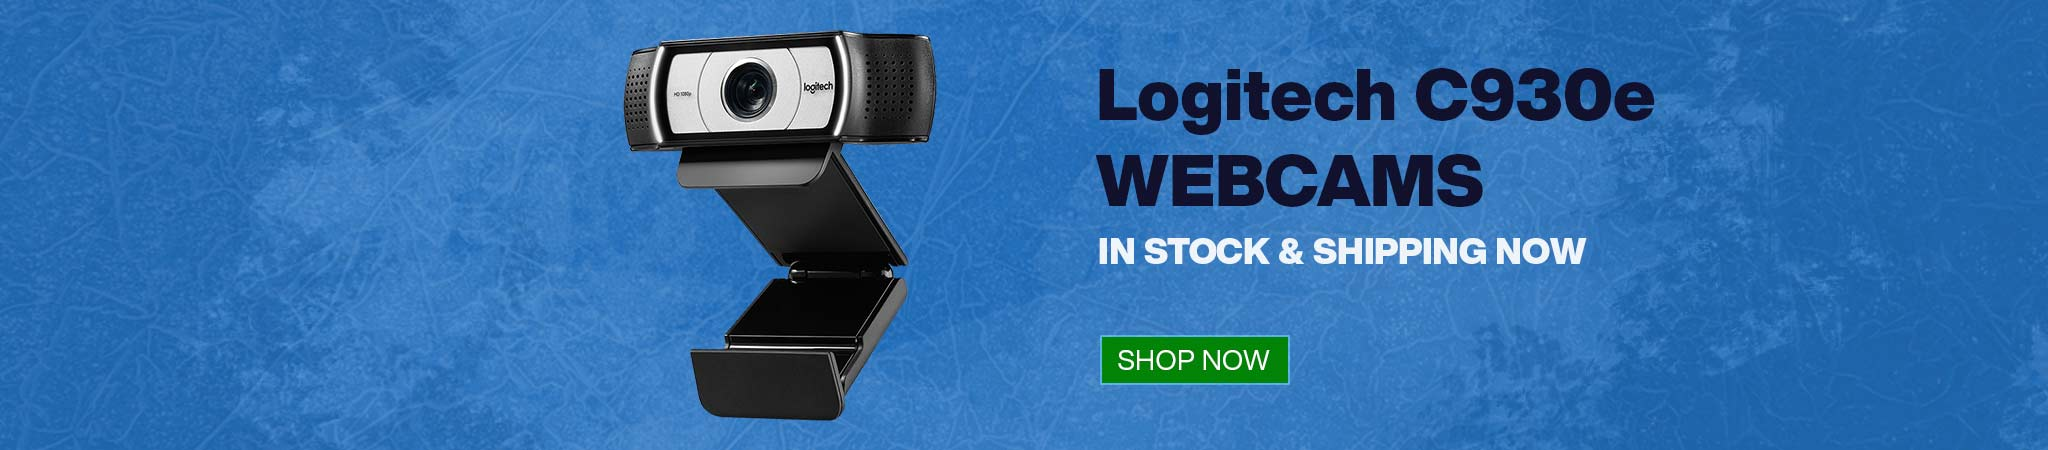 Logitech C930e webcam in stock and shipping